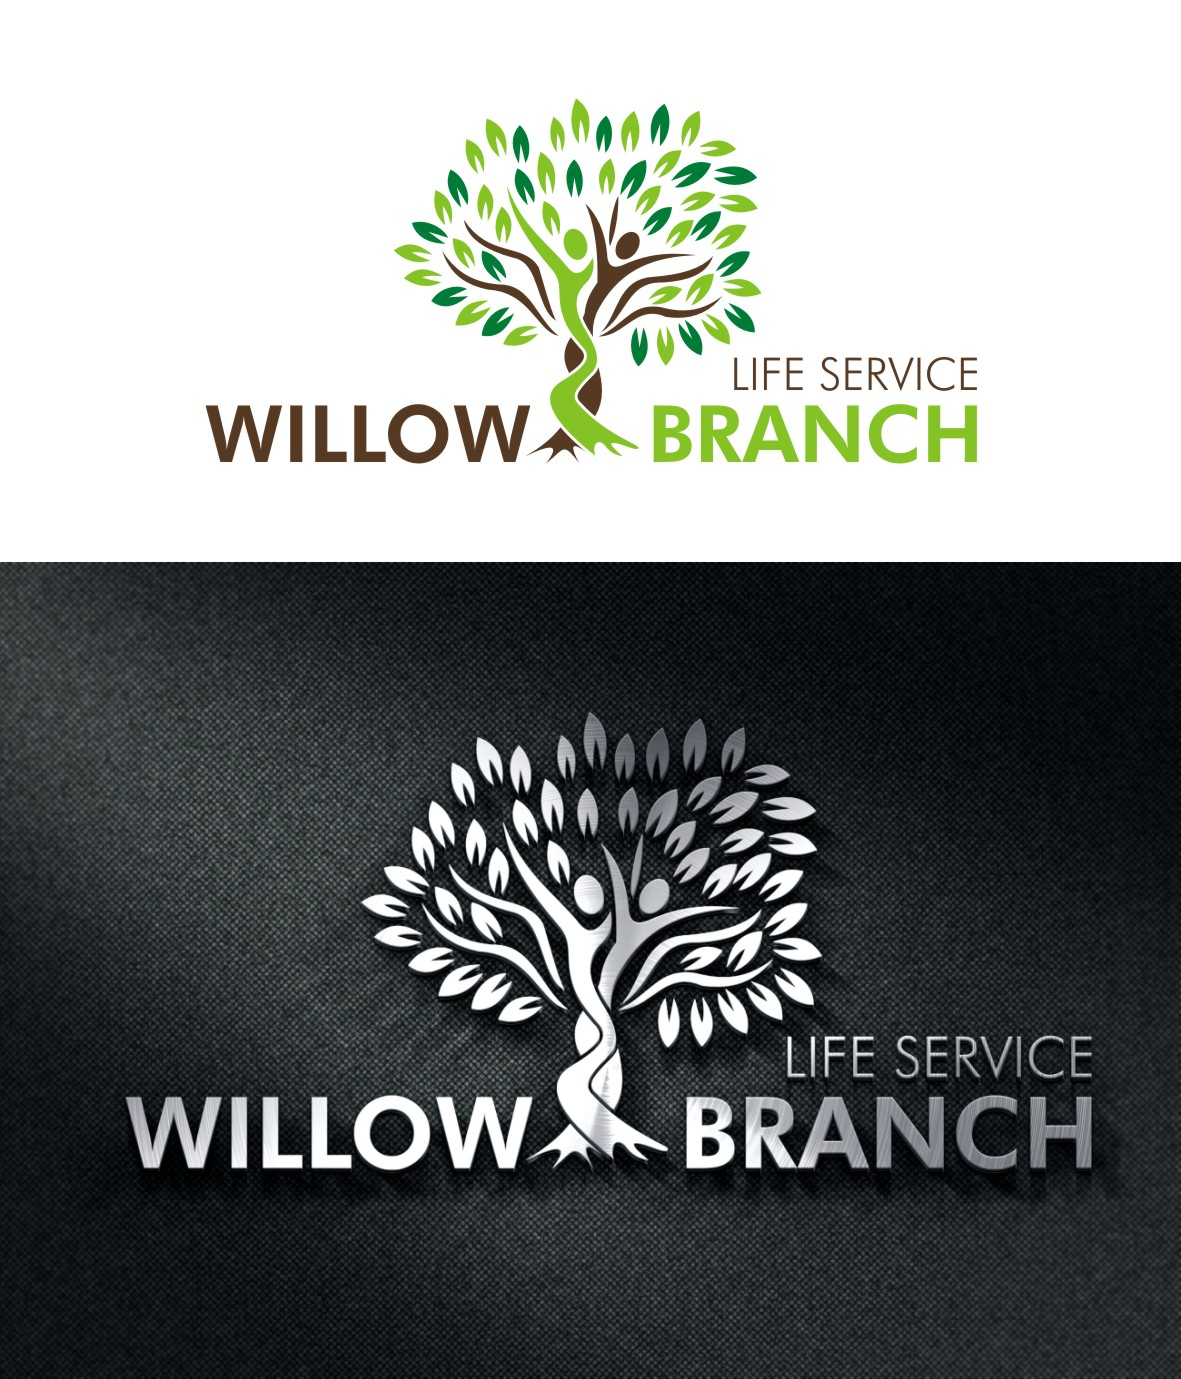 Logo Design by Spider Graphics - Entry No. 219 in the Logo Design Contest Artistic Logo Design for Willow Branch Life Service.